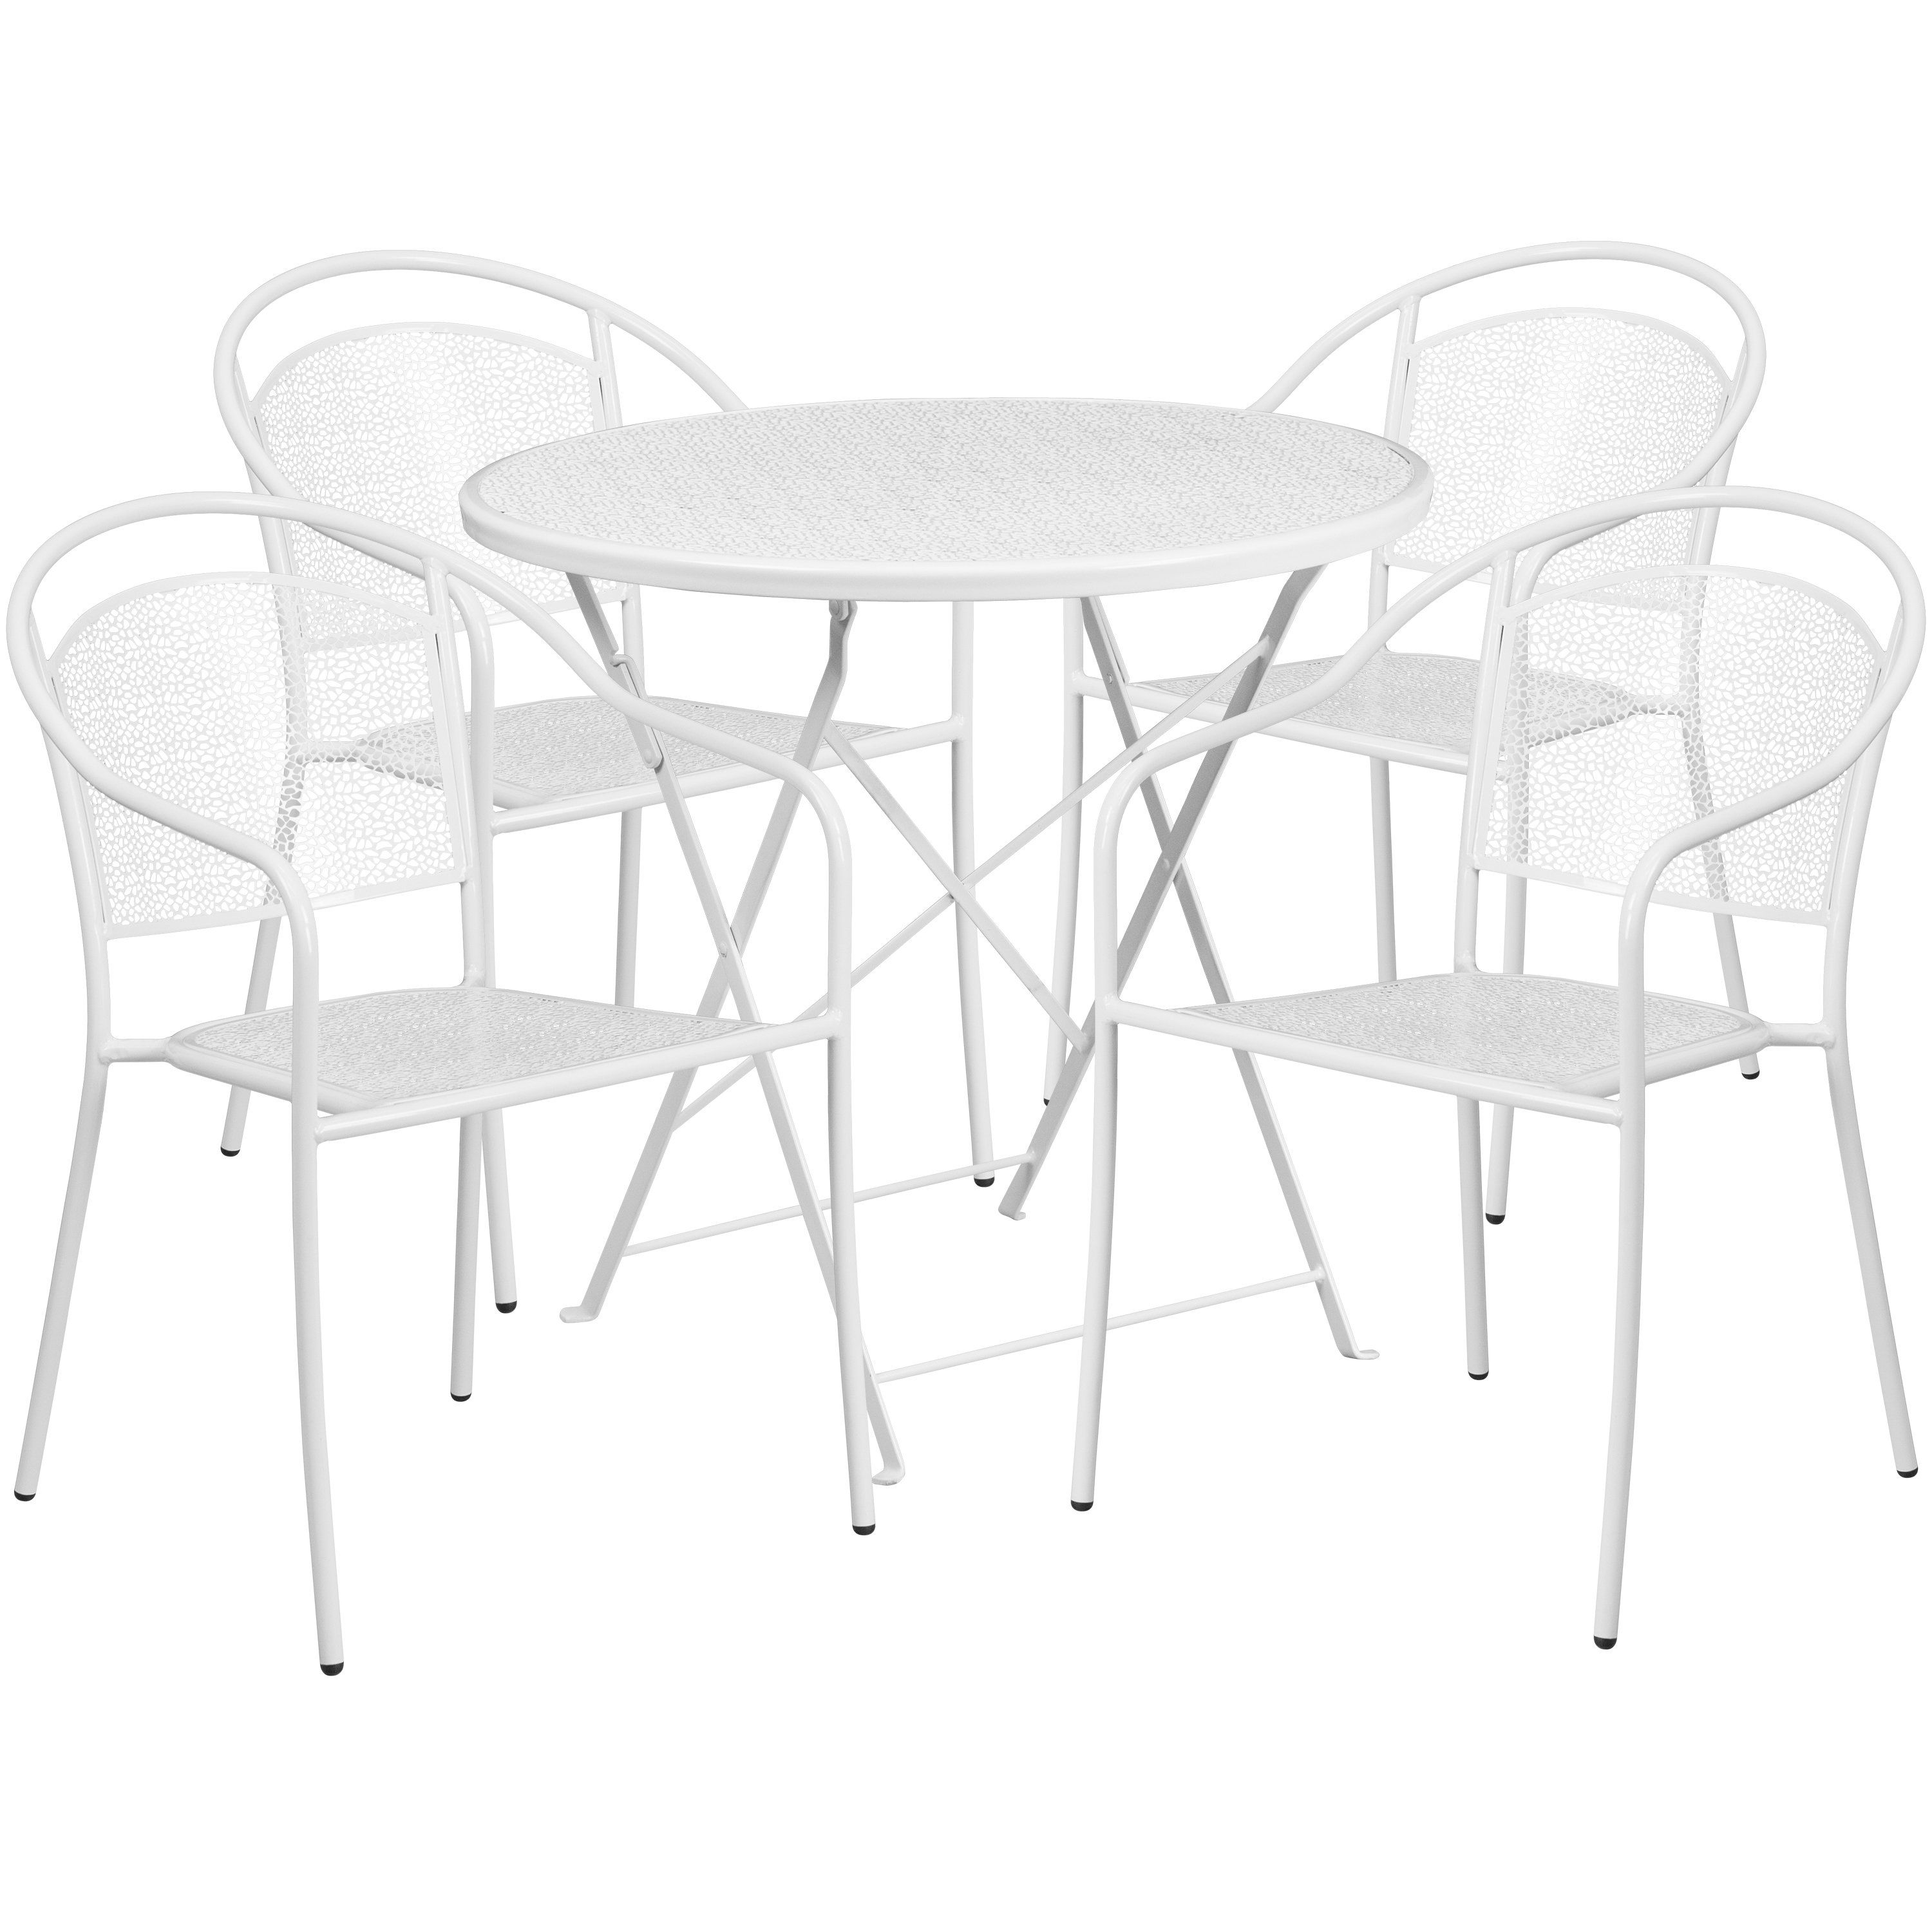 30 Round White Indoor Outdoor Steel Folding Patio Table Set With